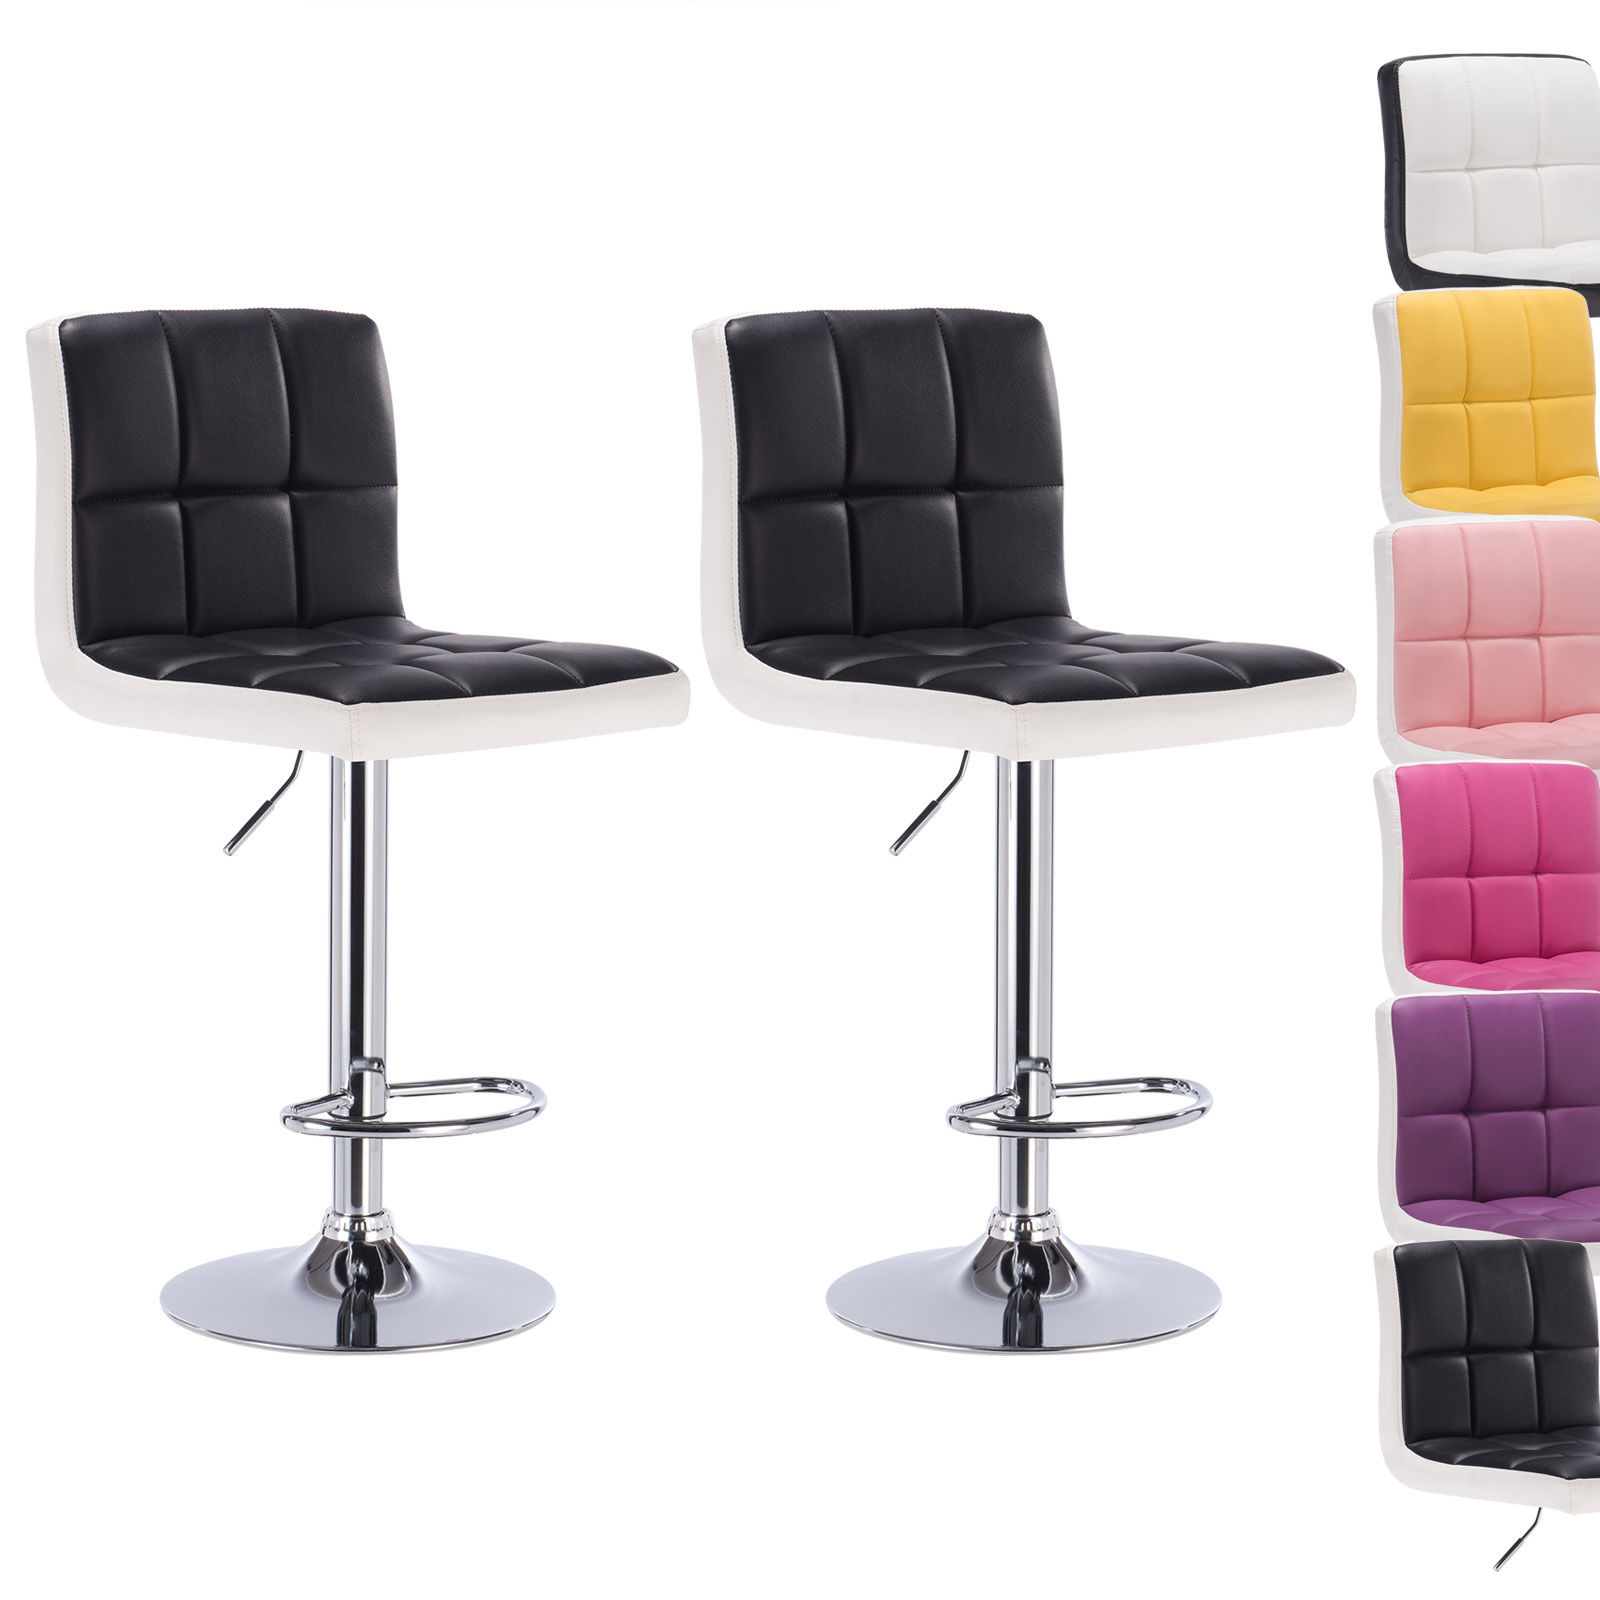 JEOBEST 2pcs Synthetic Leather Swivel Bar Stools Chairs Height Adjustable Pneumatic Modern Style kitchen Chairs Barstools HWC